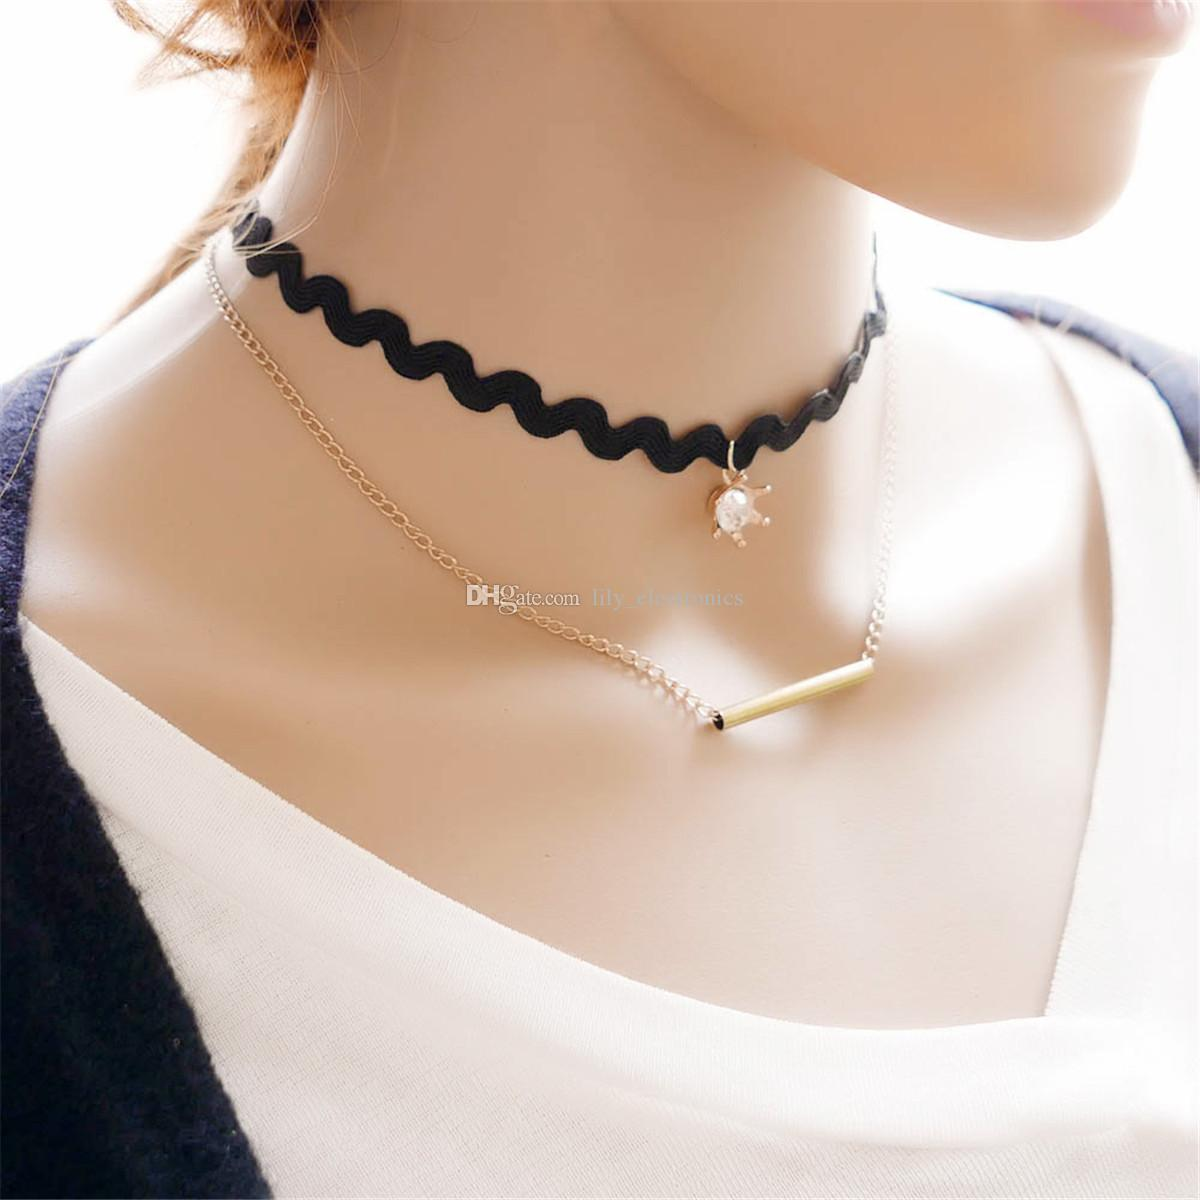 Black Gothic Collar Wave Lace Crown Crystal Pendant Multilayer Alloy Necklaces Chock Jewelry For Women Pack of